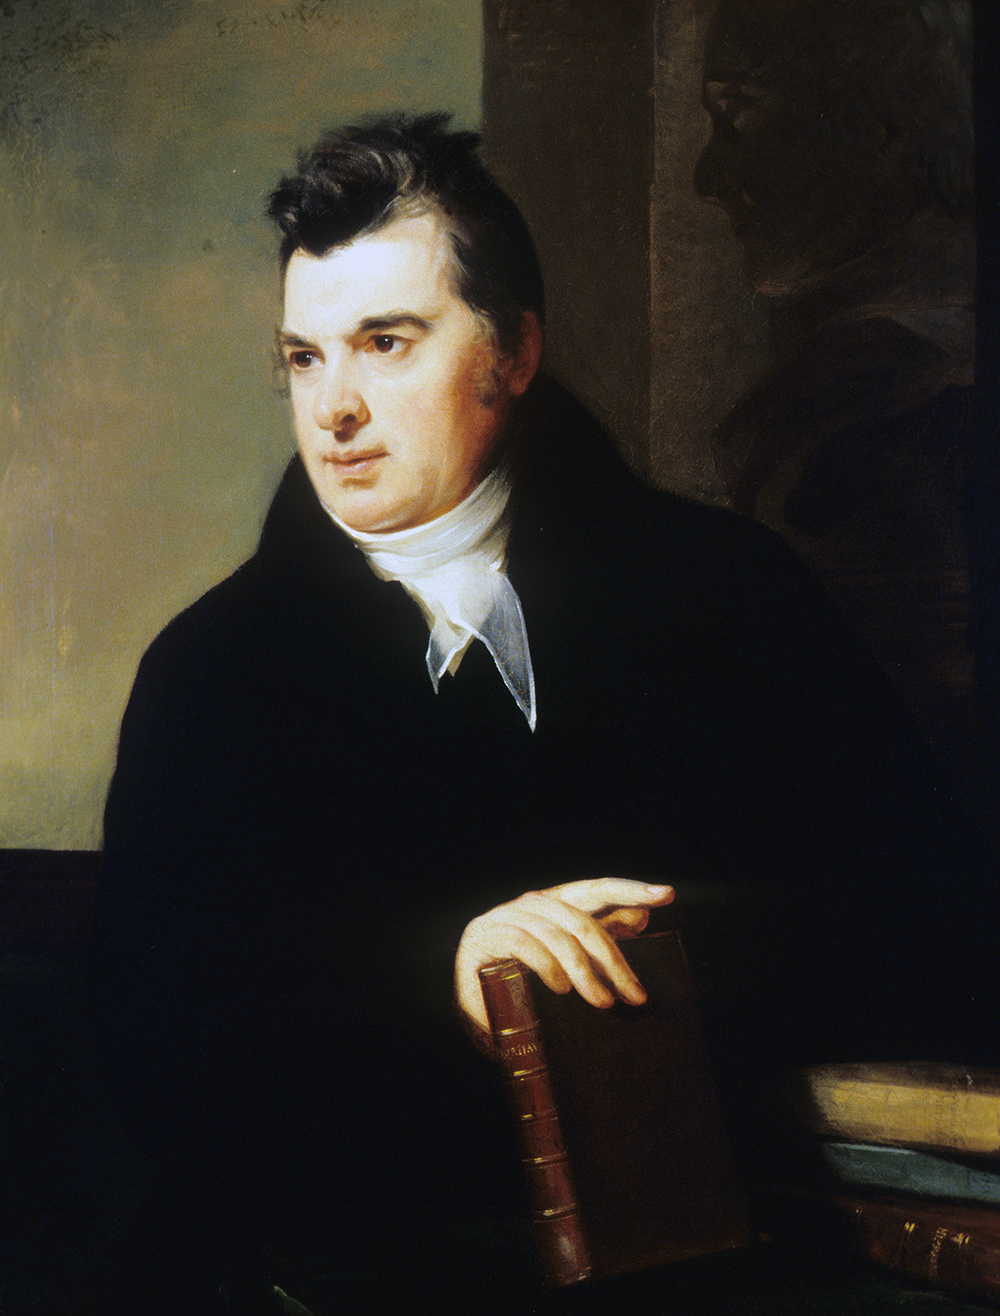 Portrait of David Hosack, MD, by Thomas Sully, 1815. Courtesy of Winterthur Museum, Philadelphia, PA, Gift of Mr. J. Hampton Barnes, Jr.